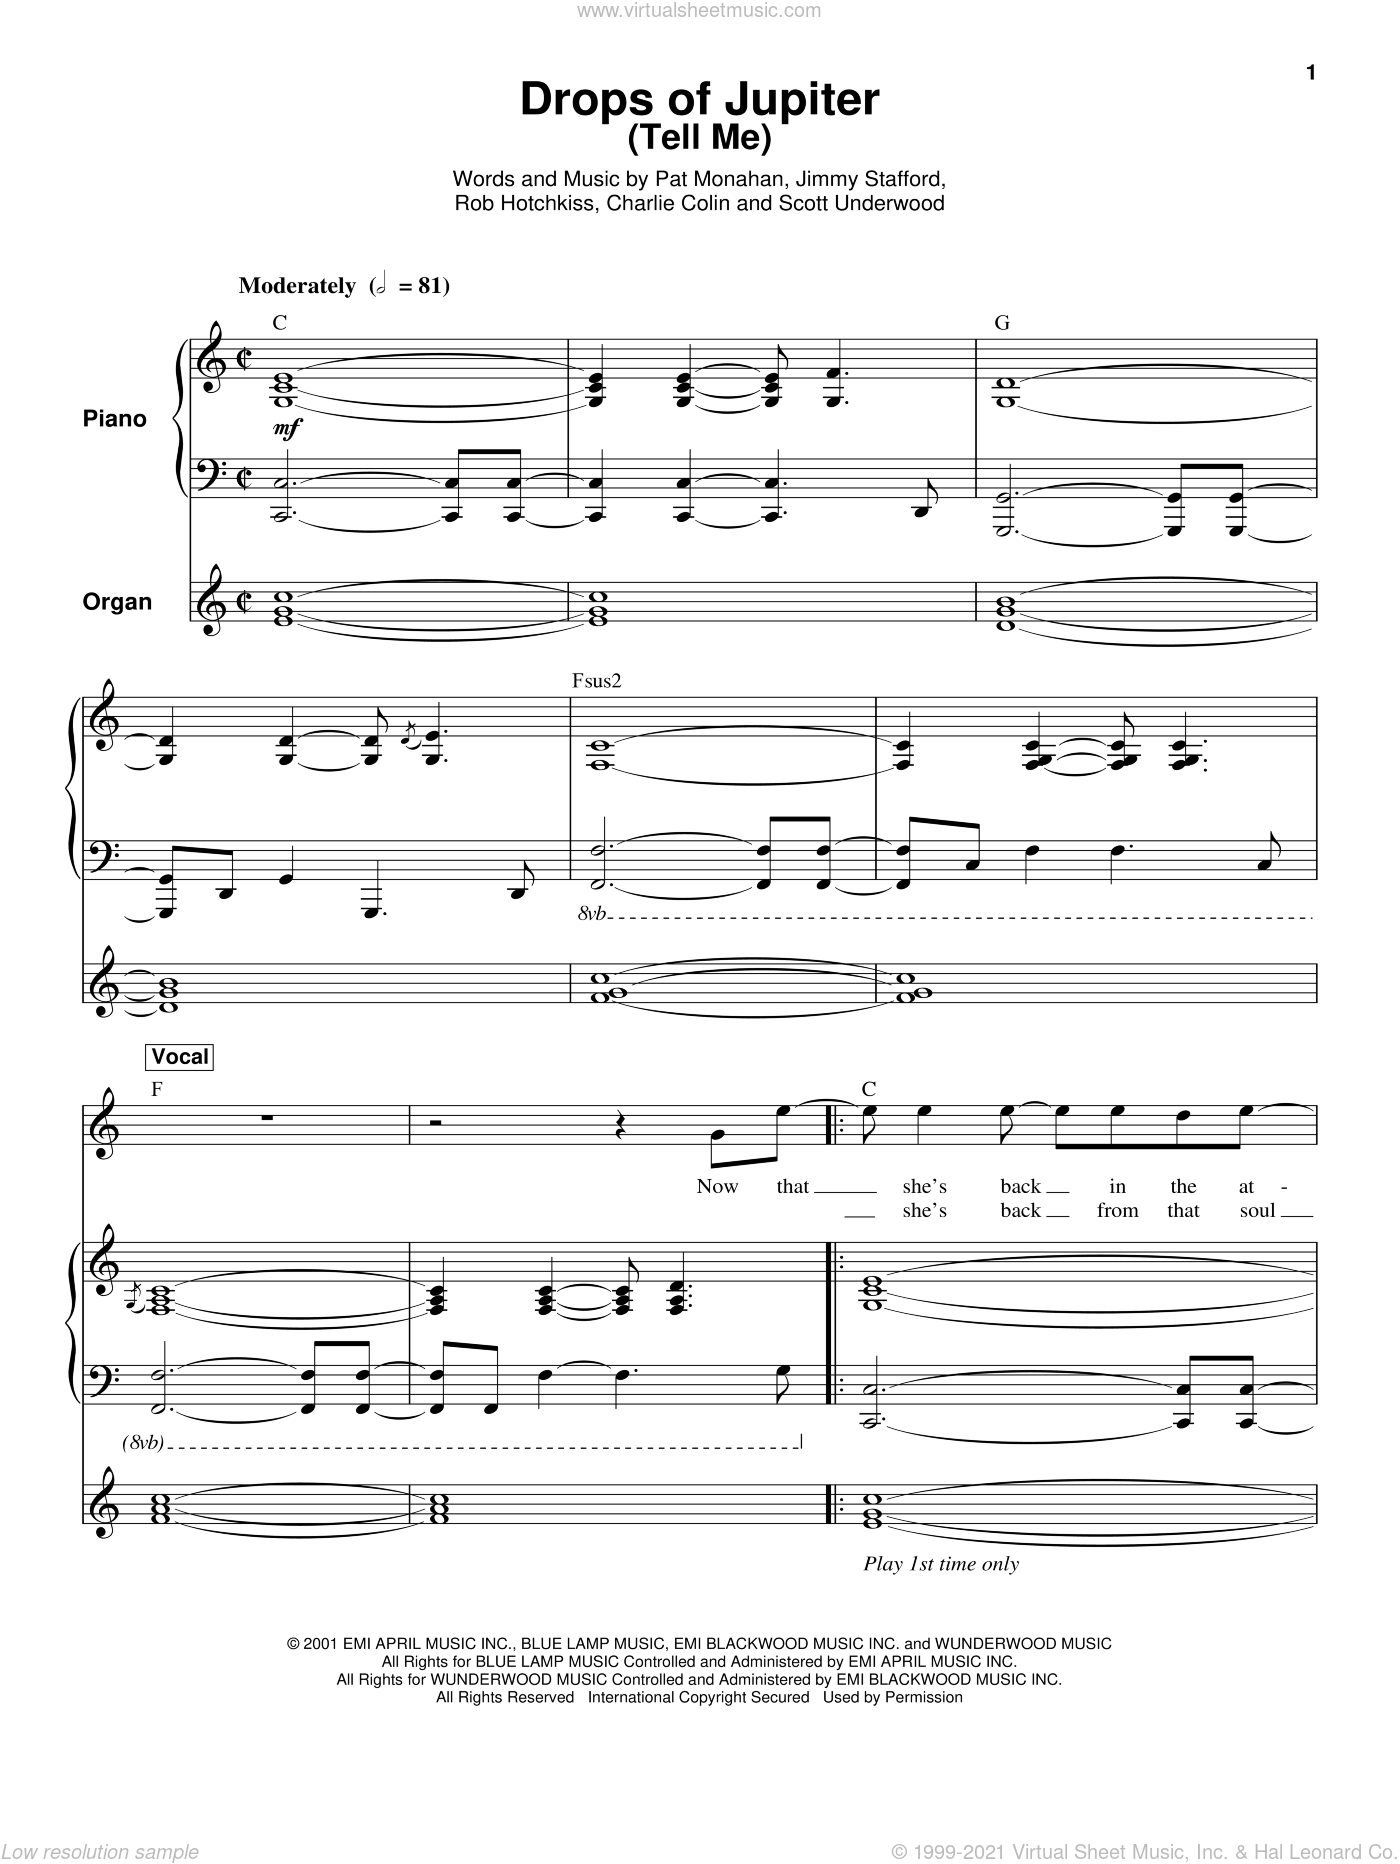 Drops Of Jupiter (Tell Me) sheet music for keyboard or piano by Train, Charles Colin, James Stafford, Pat Monahan, Robert Hotchkiss and Scott Underwood, intermediate skill level